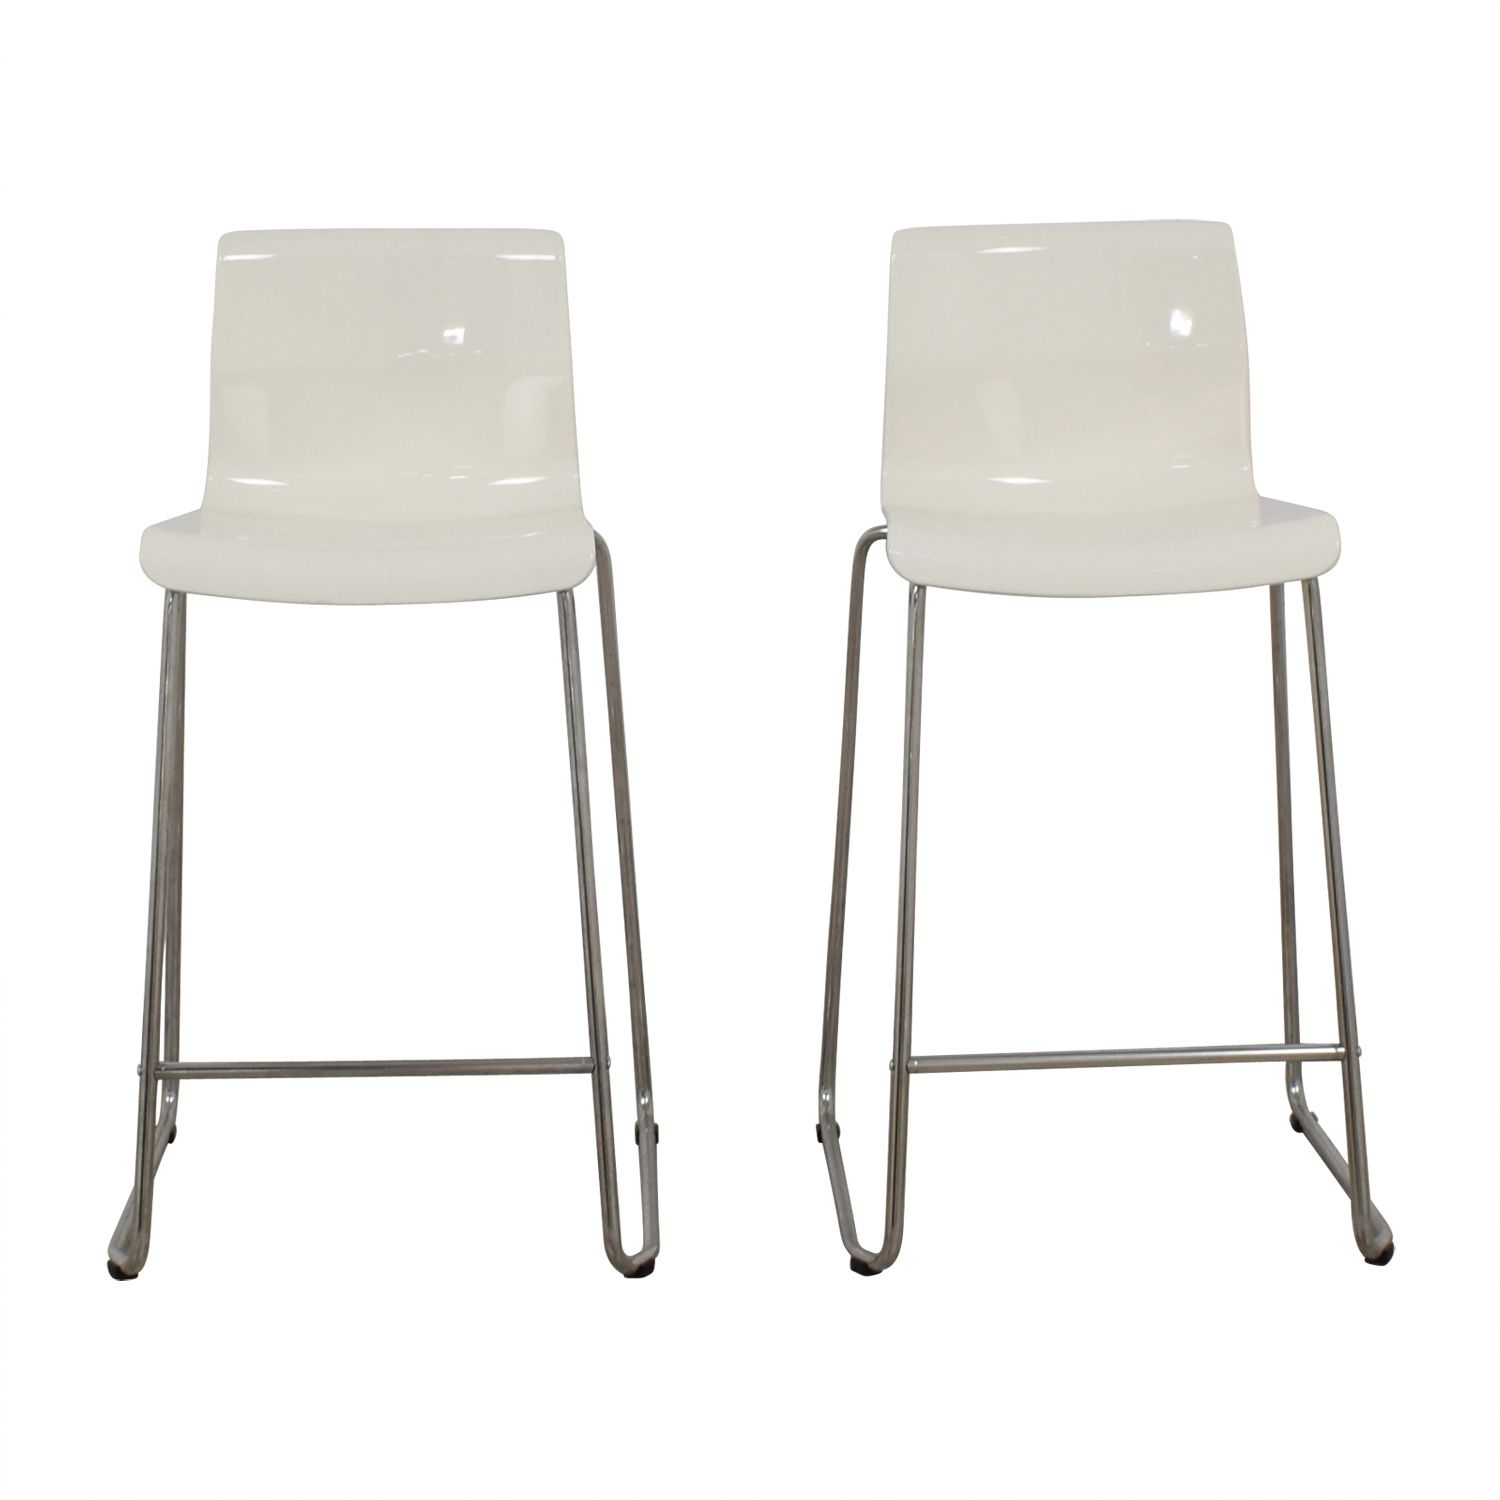 Fabulous 57 Off Ikea Ikea Glenn White Bar Stools Chairs Unemploymentrelief Wooden Chair Designs For Living Room Unemploymentrelieforg